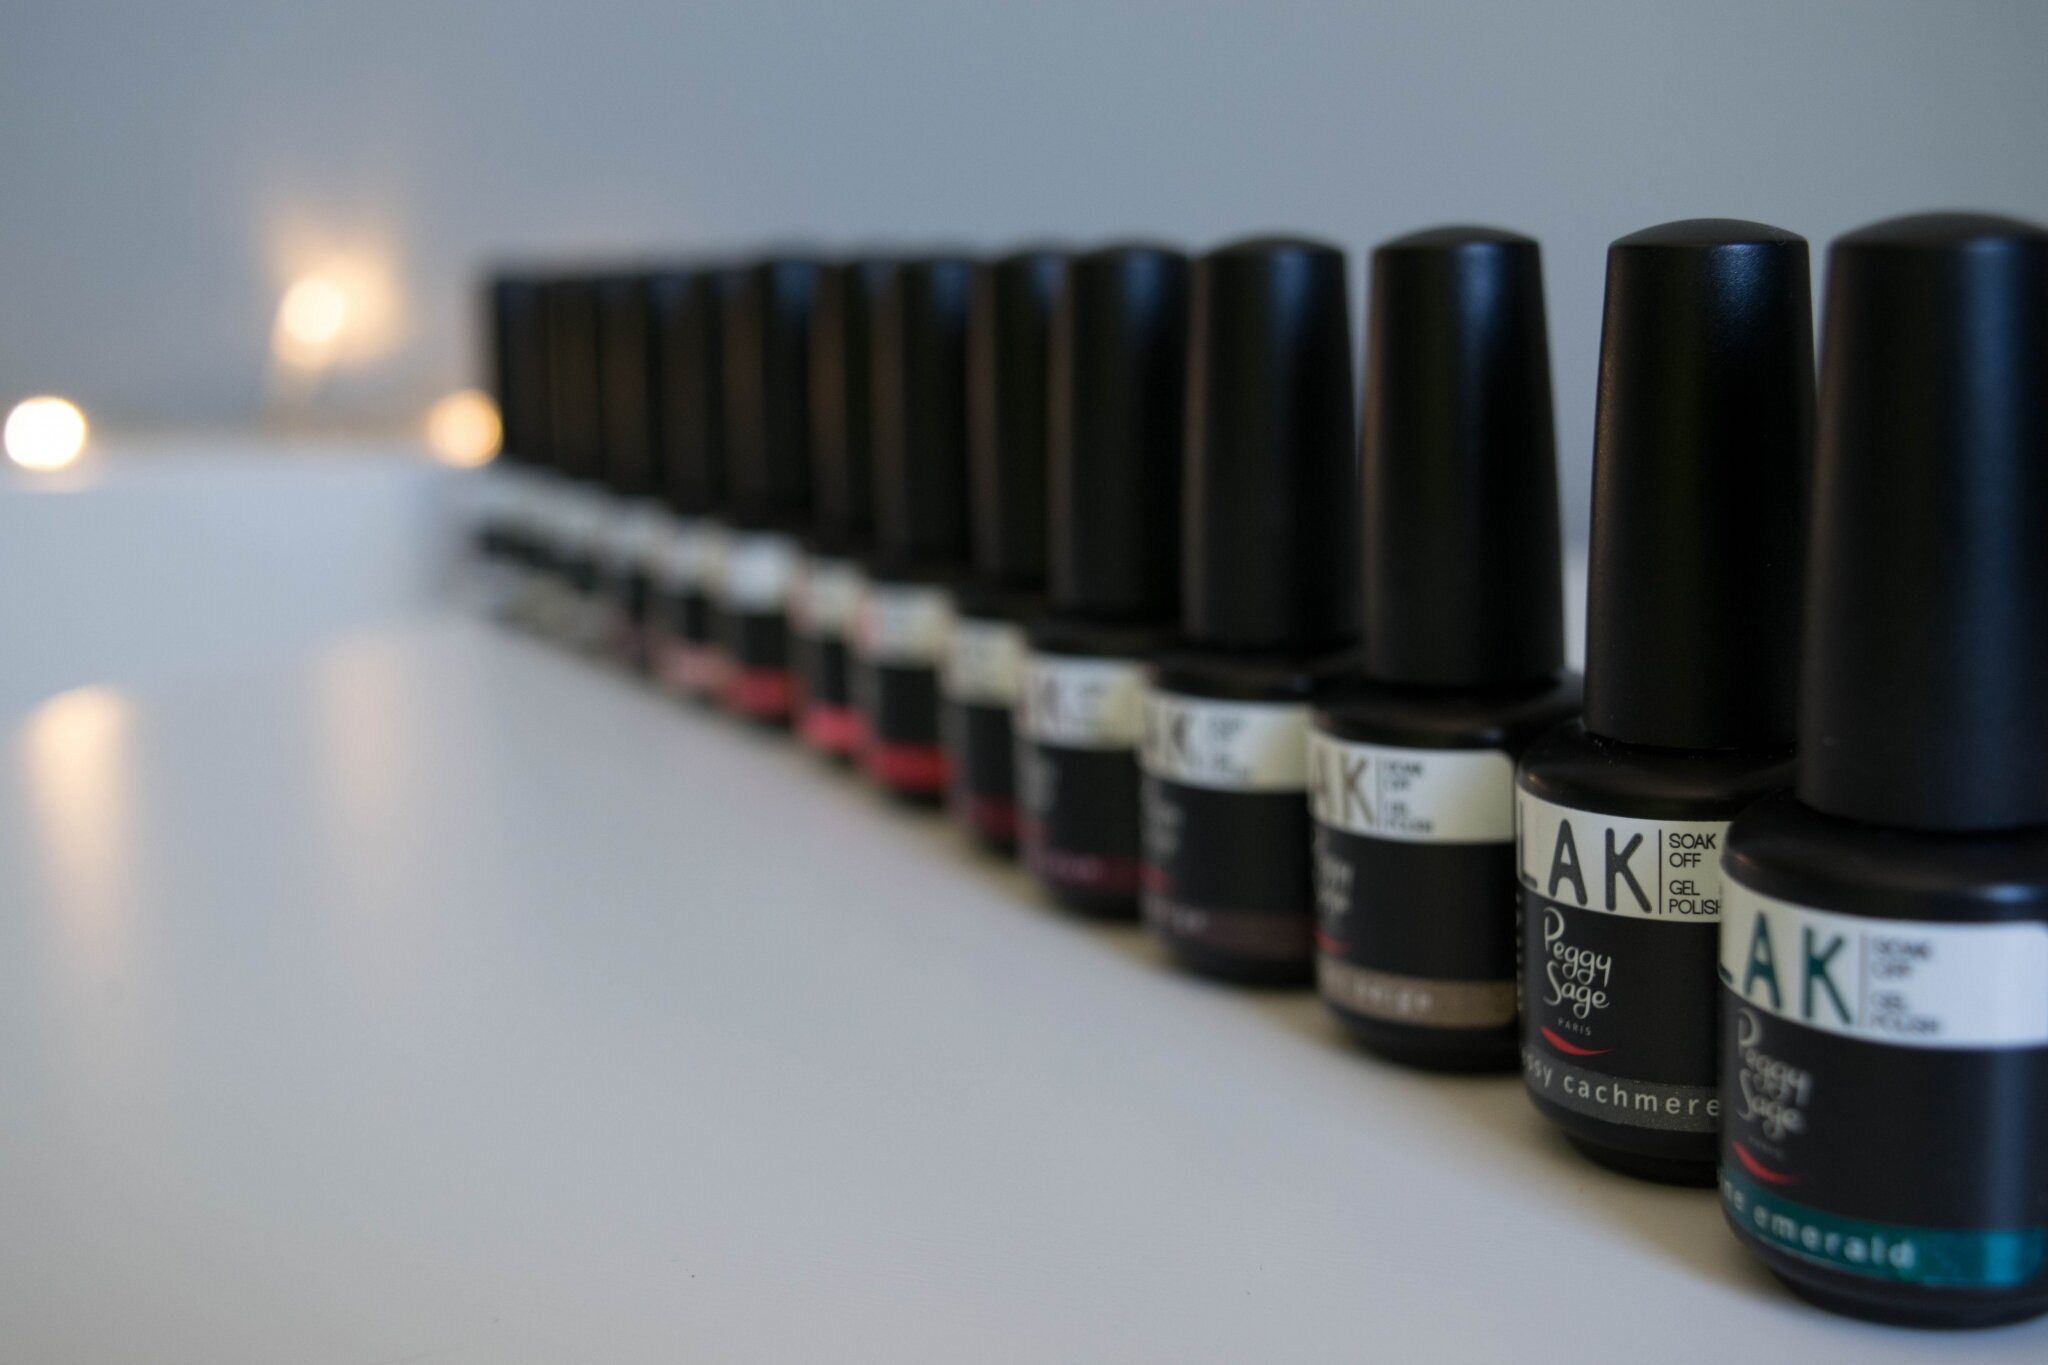 Collection : Mes Minis I-LAK